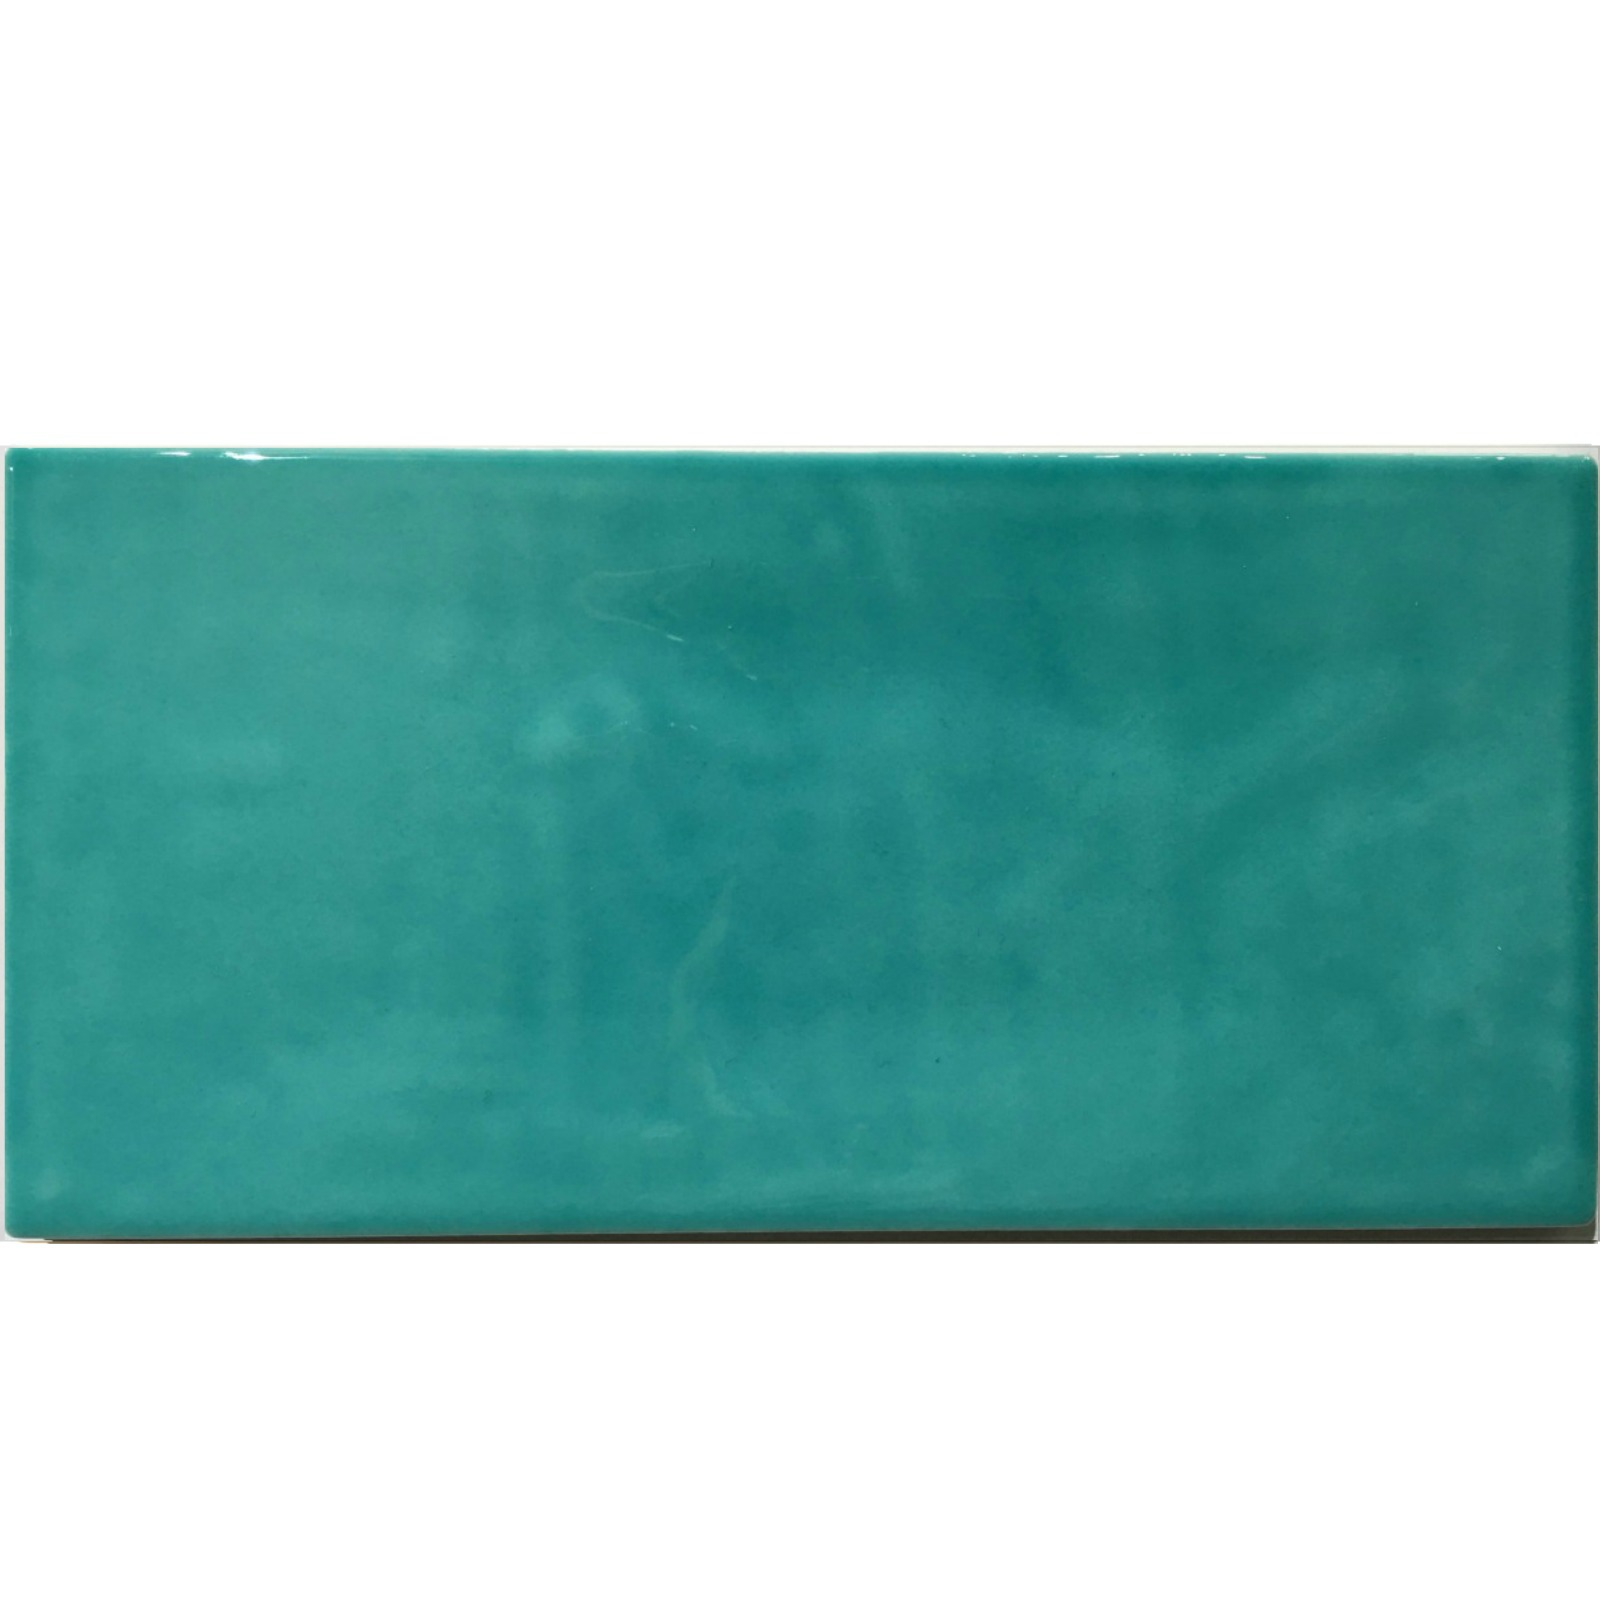 Turquoise Kitchen Wall Tiles: Candy Turquoise 10cm X 20cm Wall Tile